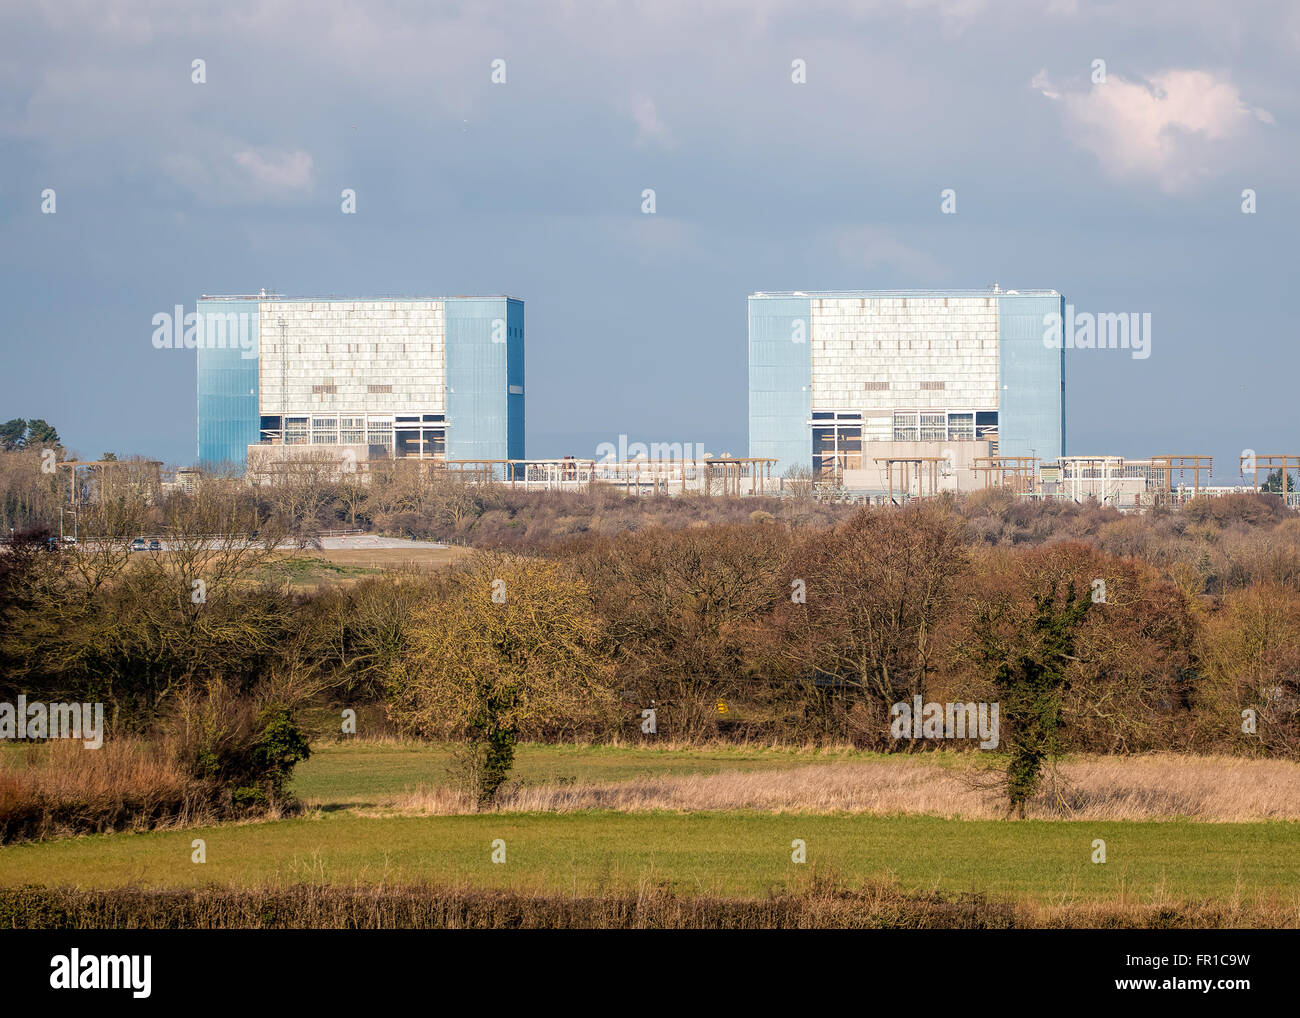 Somerset, UK - February 28, 2016: Hinkley Point Nuclear Power Station Somerset, UK. EDITORIAL USE ONLY Stock Photo